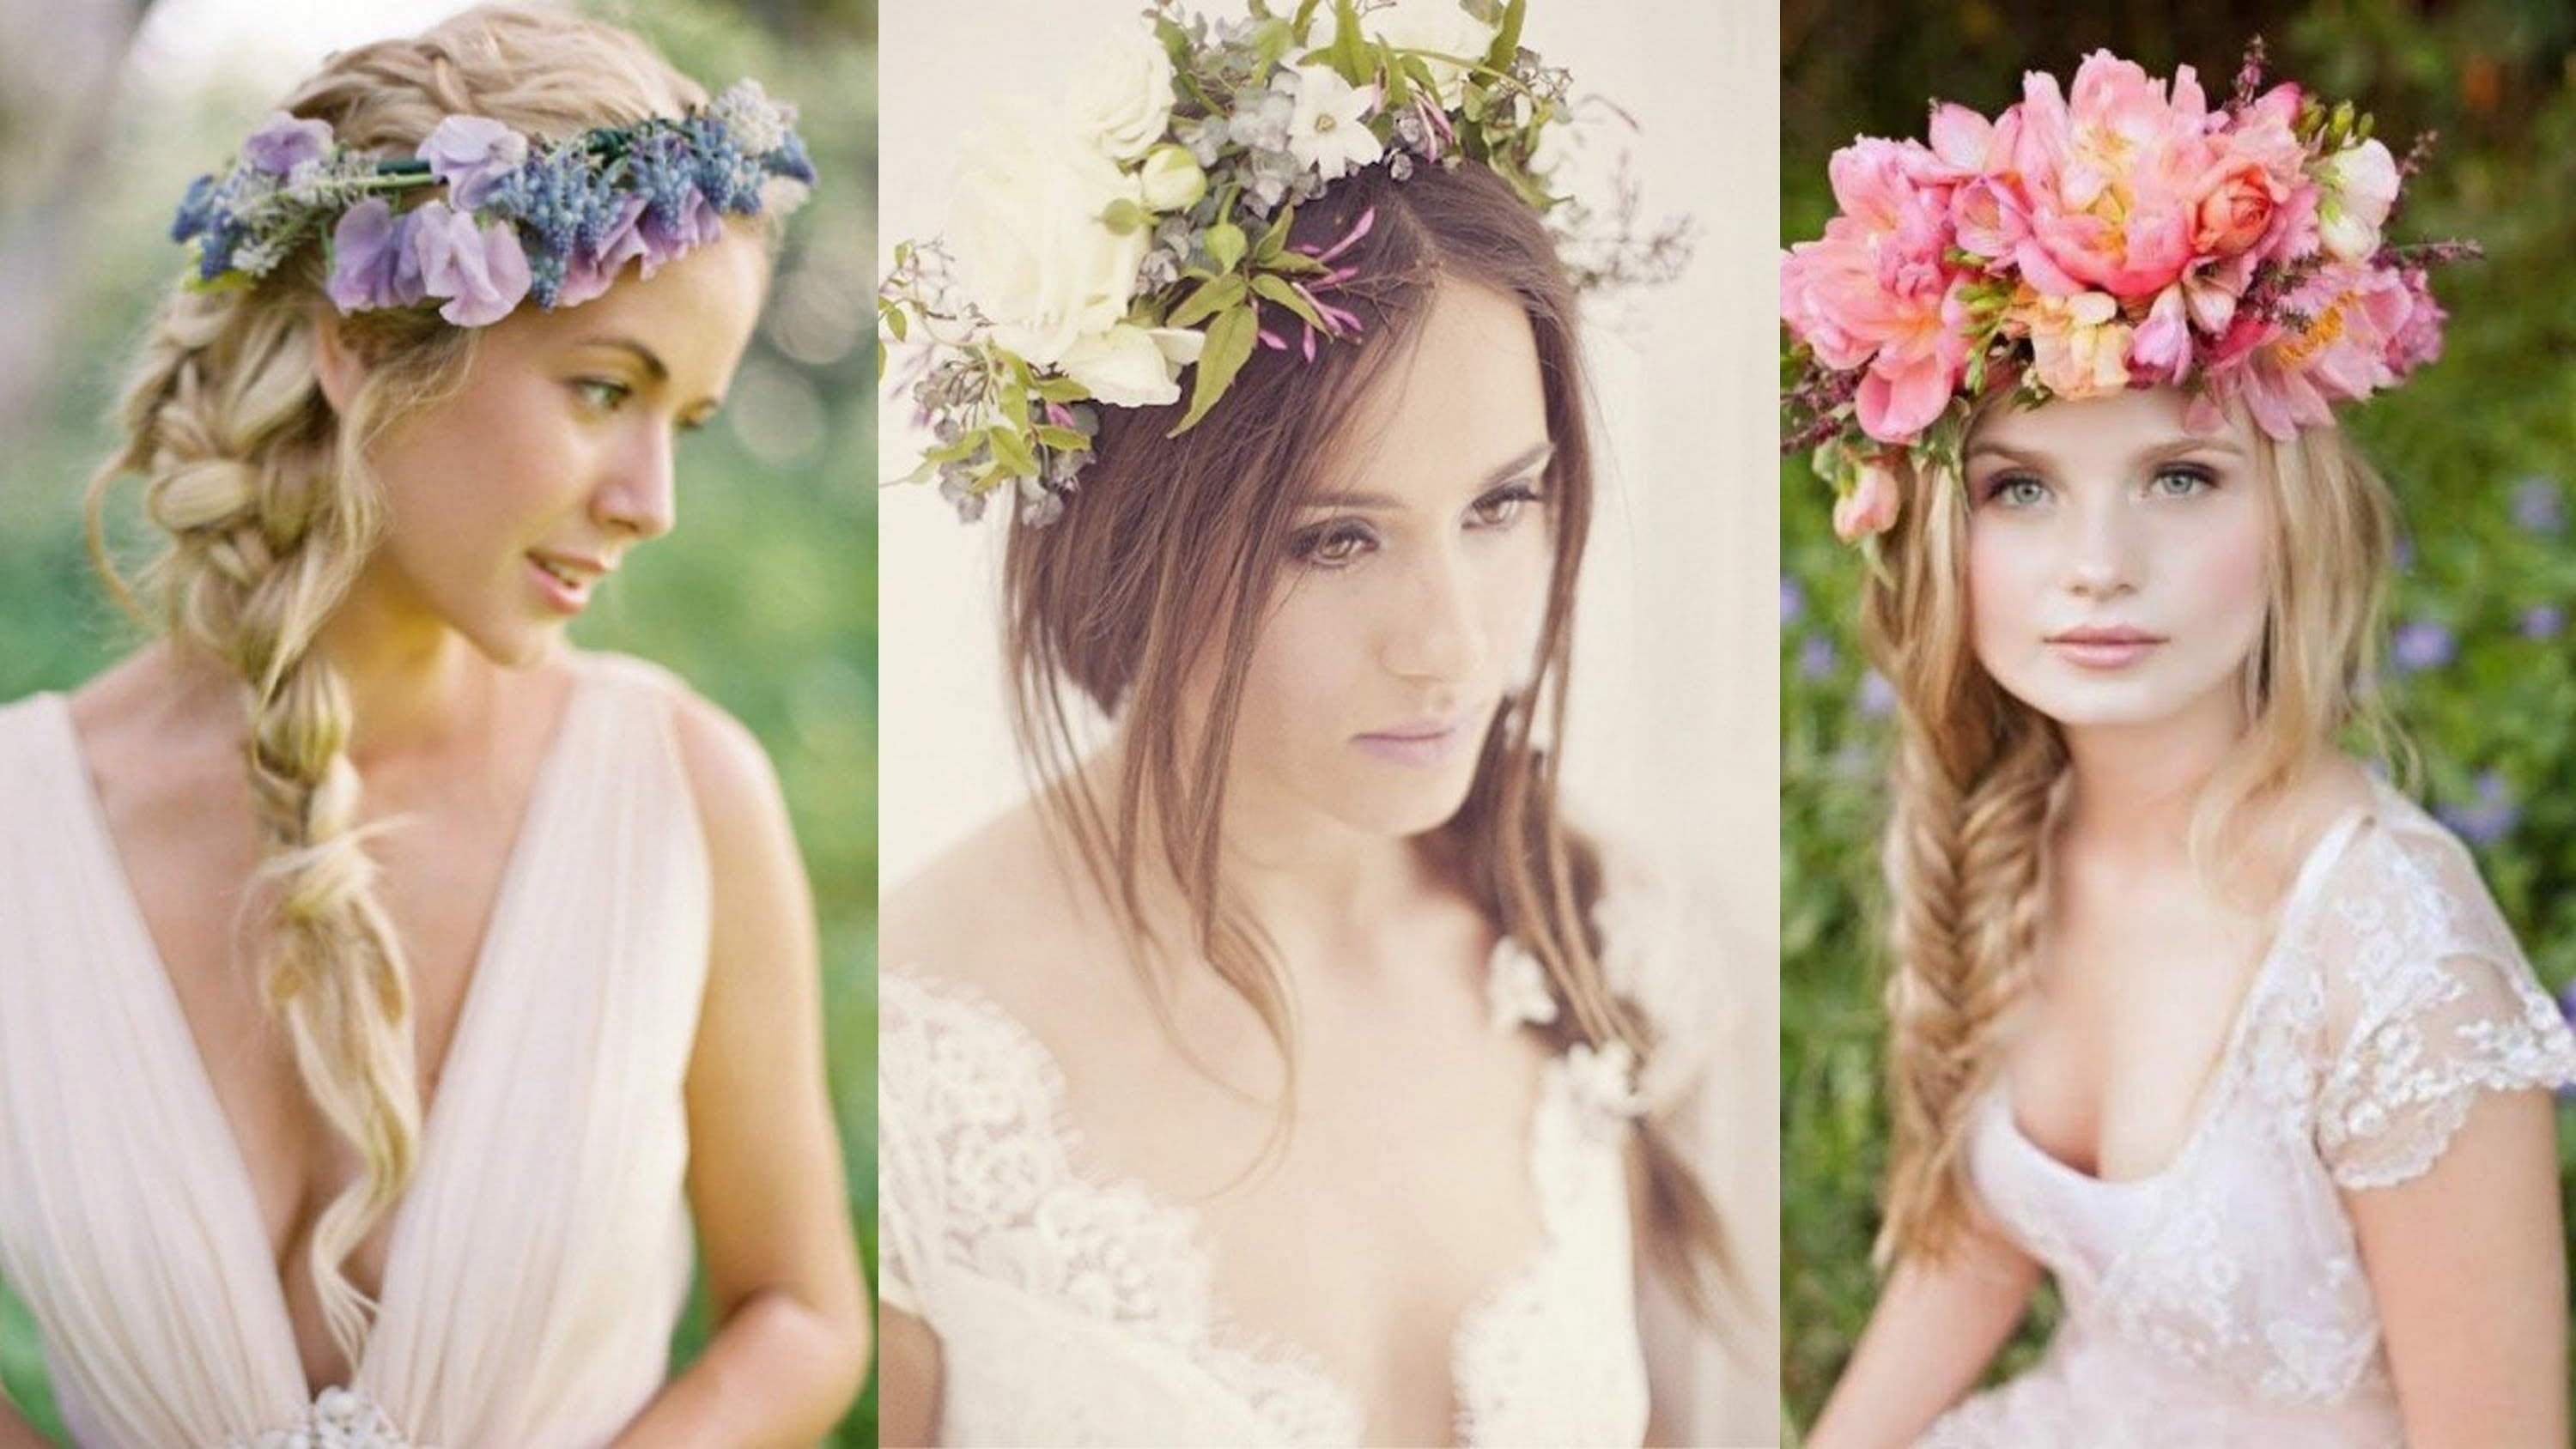 Braided Wedding Hairstyles With Flowers – Youtube Regarding Well Known Braids And Flowers Hairstyles (View 11 of 15)